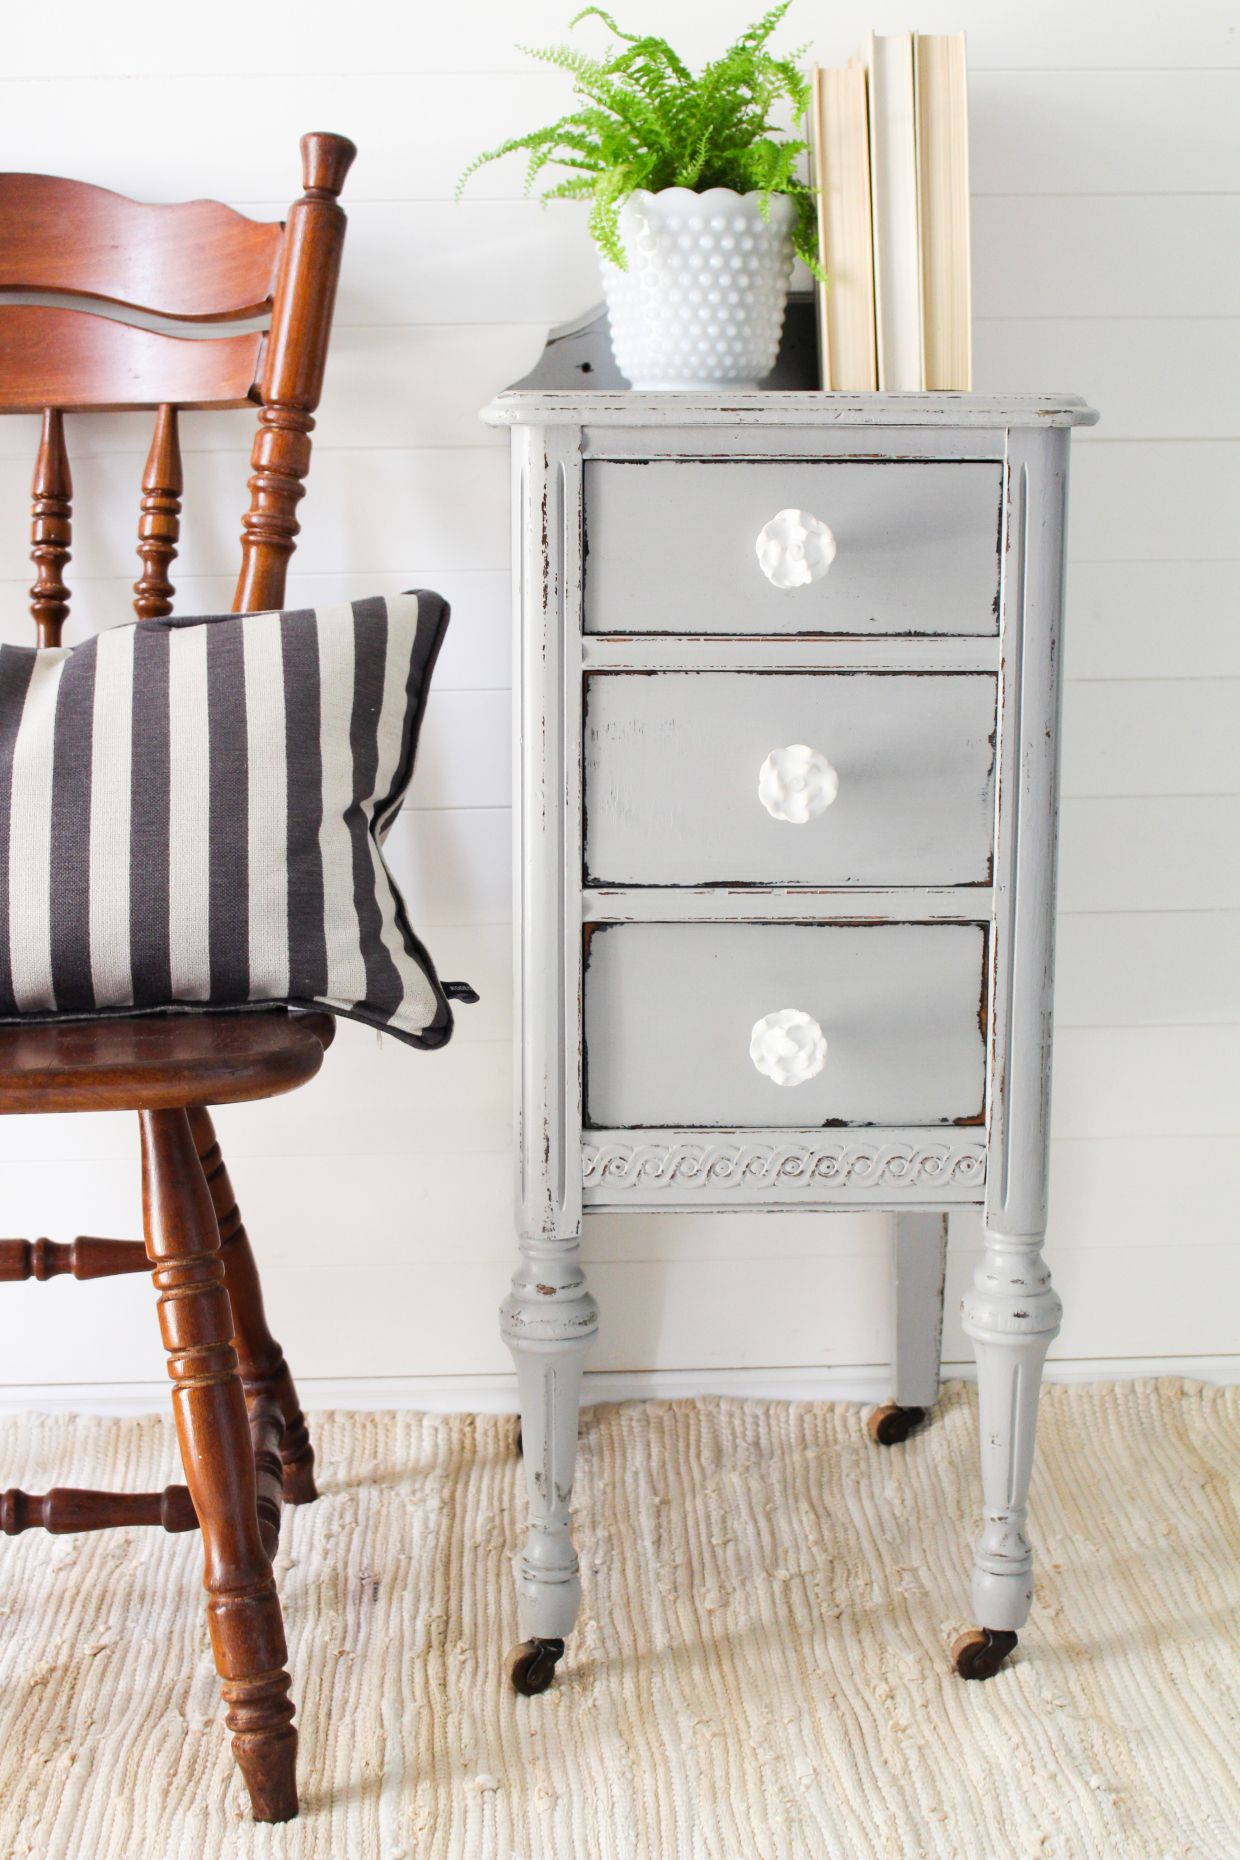 Pebble Beach End Table Country Chic Paint Blog Country Chic Paint Shabby Chic Furniture Painting Shabby Chic Furniture